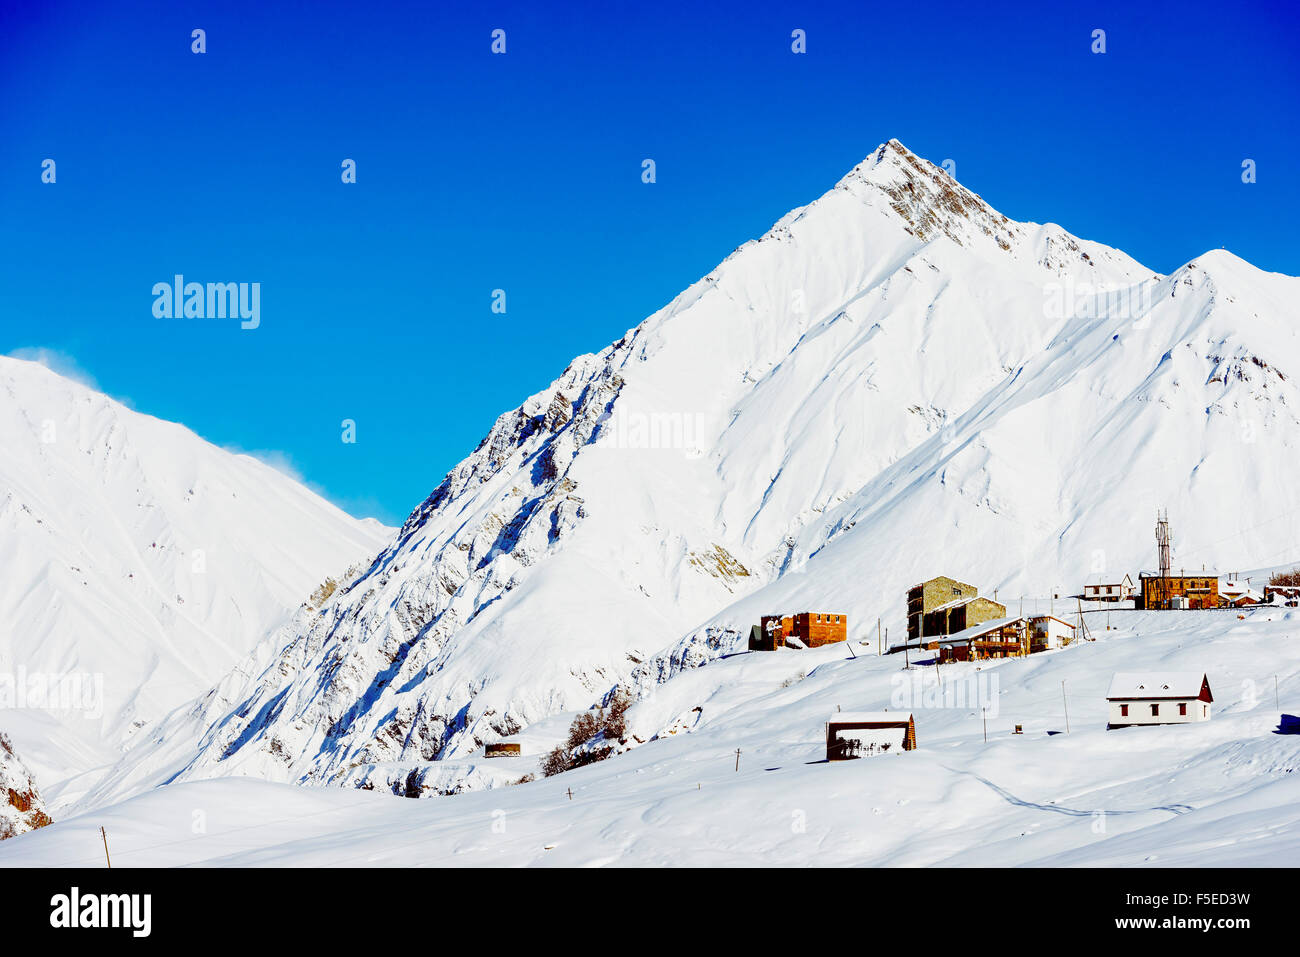 Gudauri ski resort, Georgia, Caucasus region, Central Asia, Asia Stock Photo